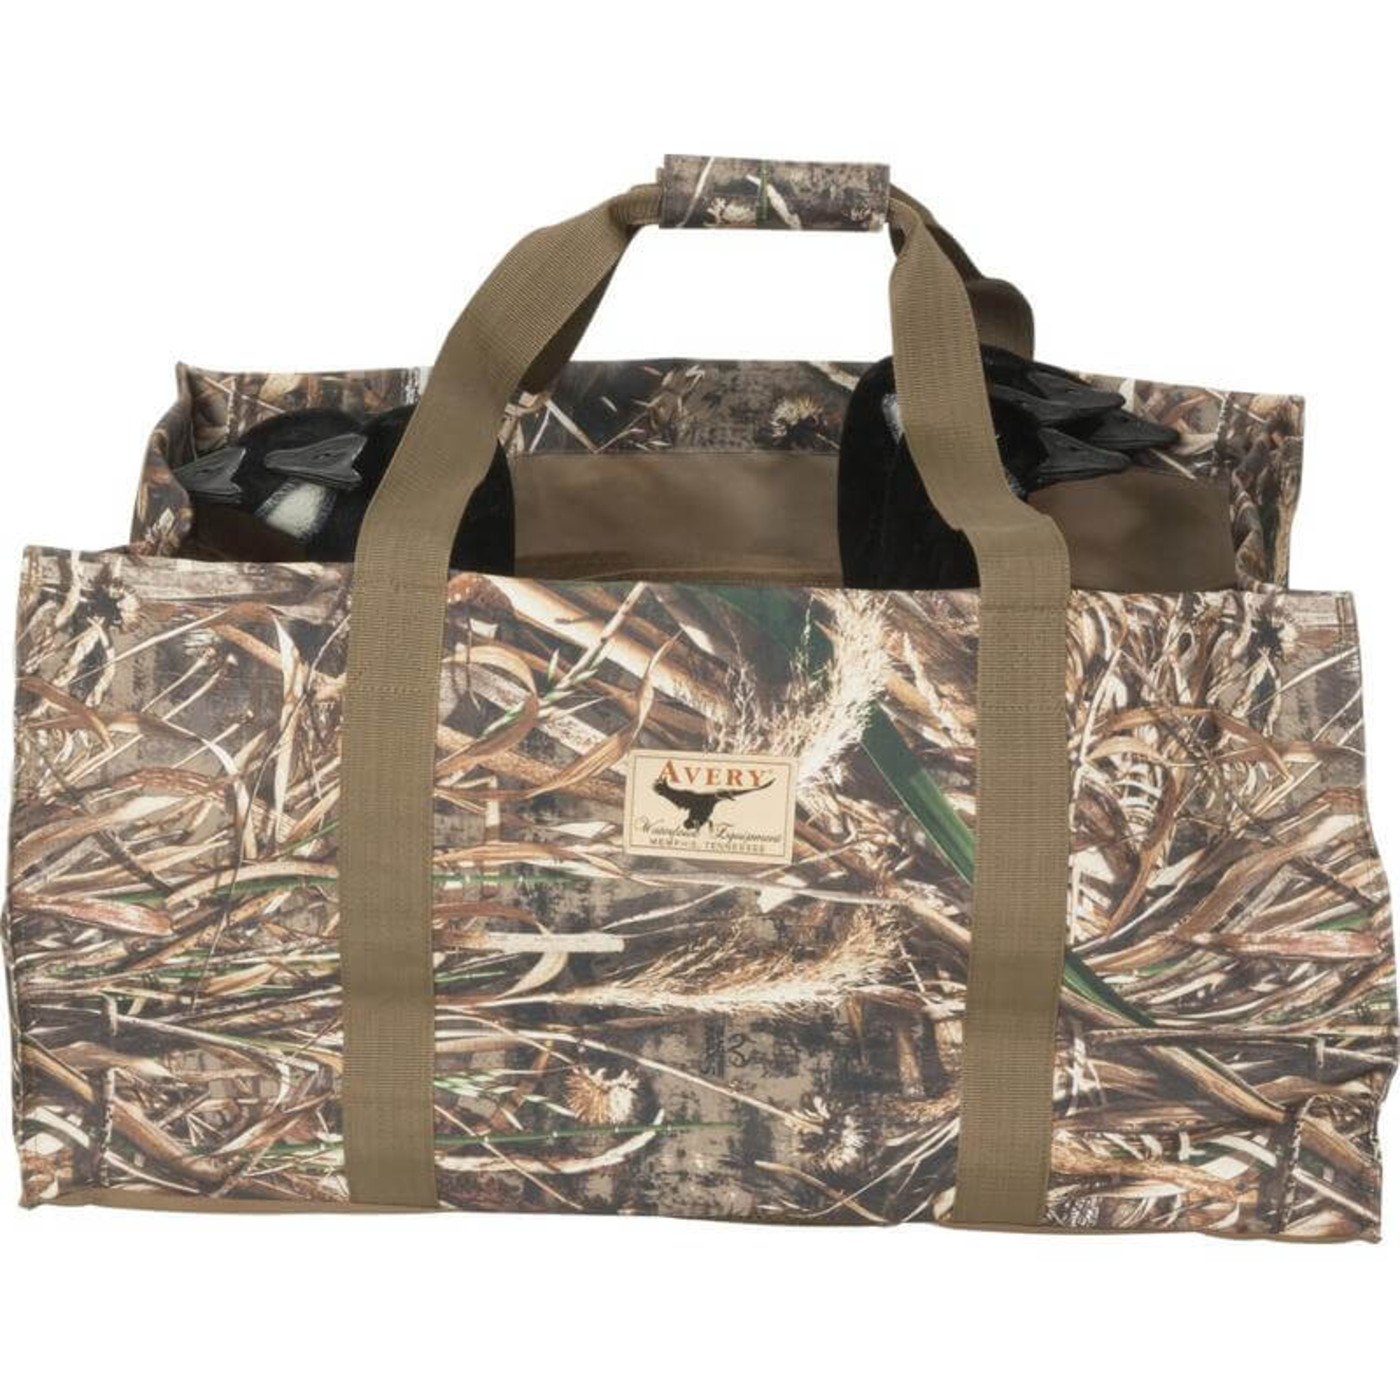 Avery Pro Grade Honker 3-D Silhouette Satchel Decoy Bag in Realtree Max 5 Color